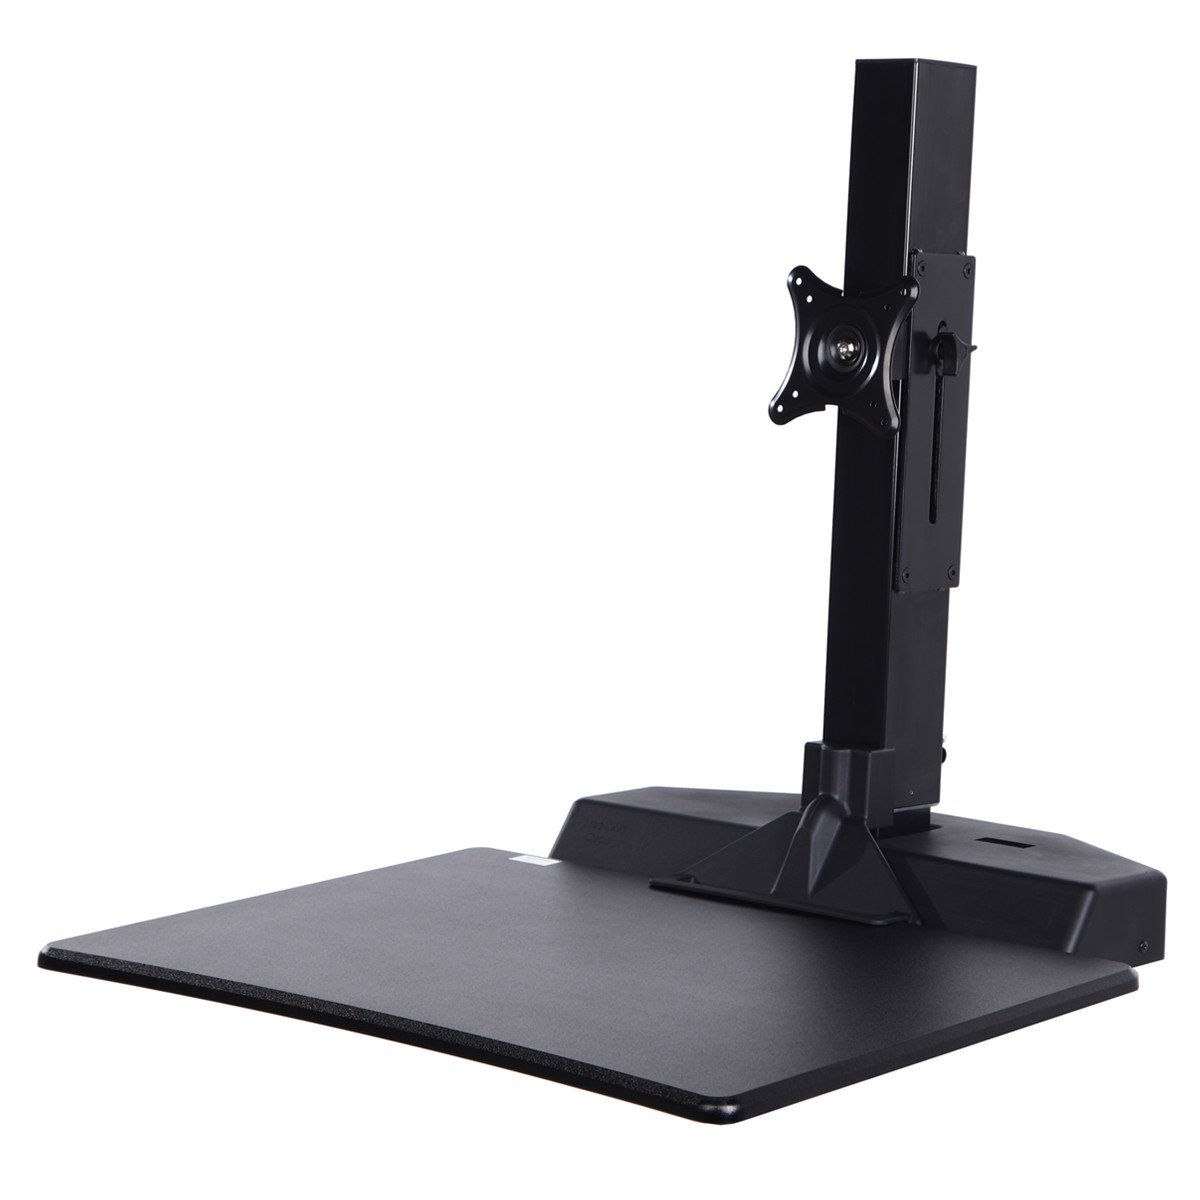 Standing Desk Riser, Freemaxdesk Electric Power Remote Control Height Adjustable Sit to Stand Desk Converter with Monitor Vesa Mount ,Worksuface(26''x21'') by freemaxdesk (Image #2)